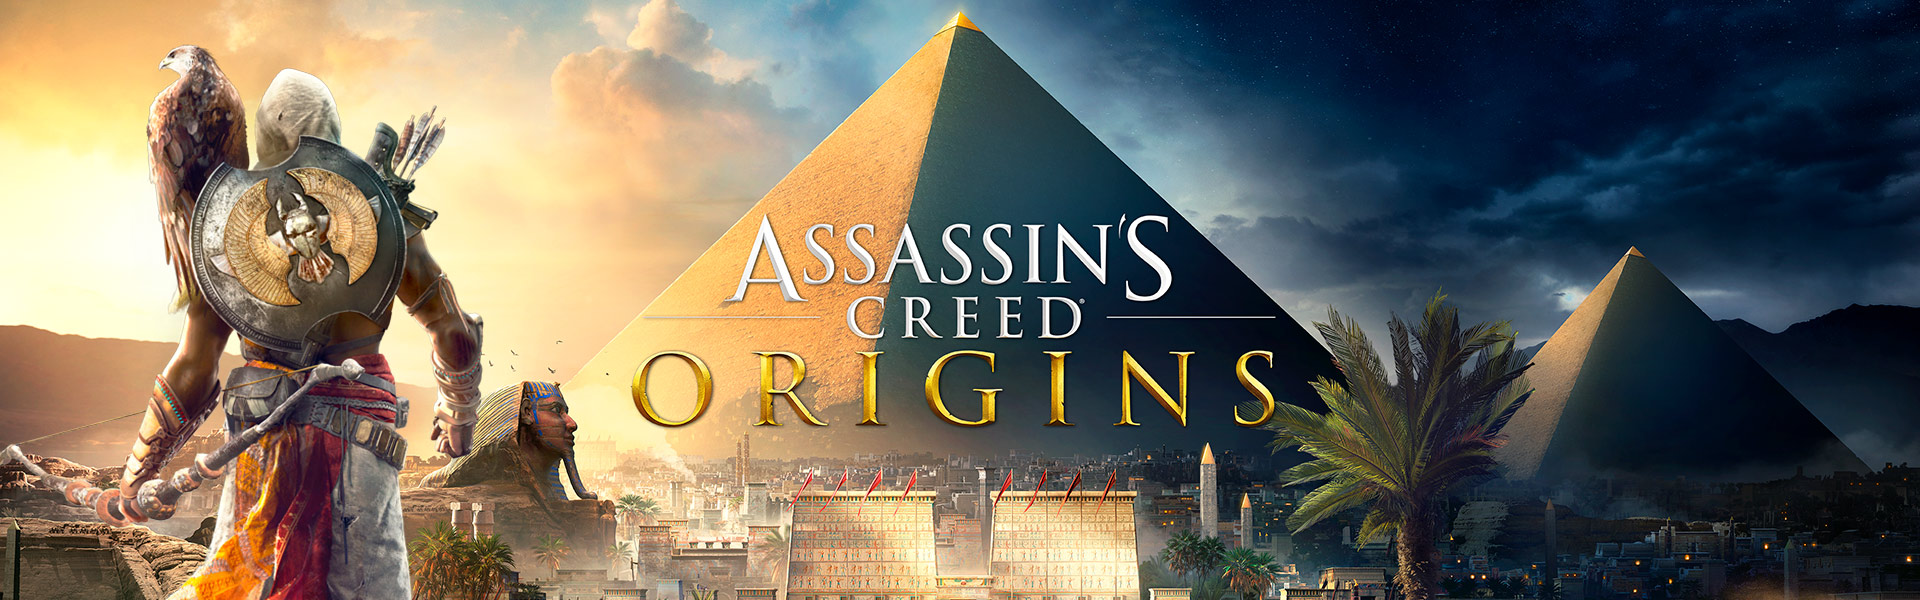 News – I requisiti minimi e raccomandati per Assassin's Creed Origins su PC